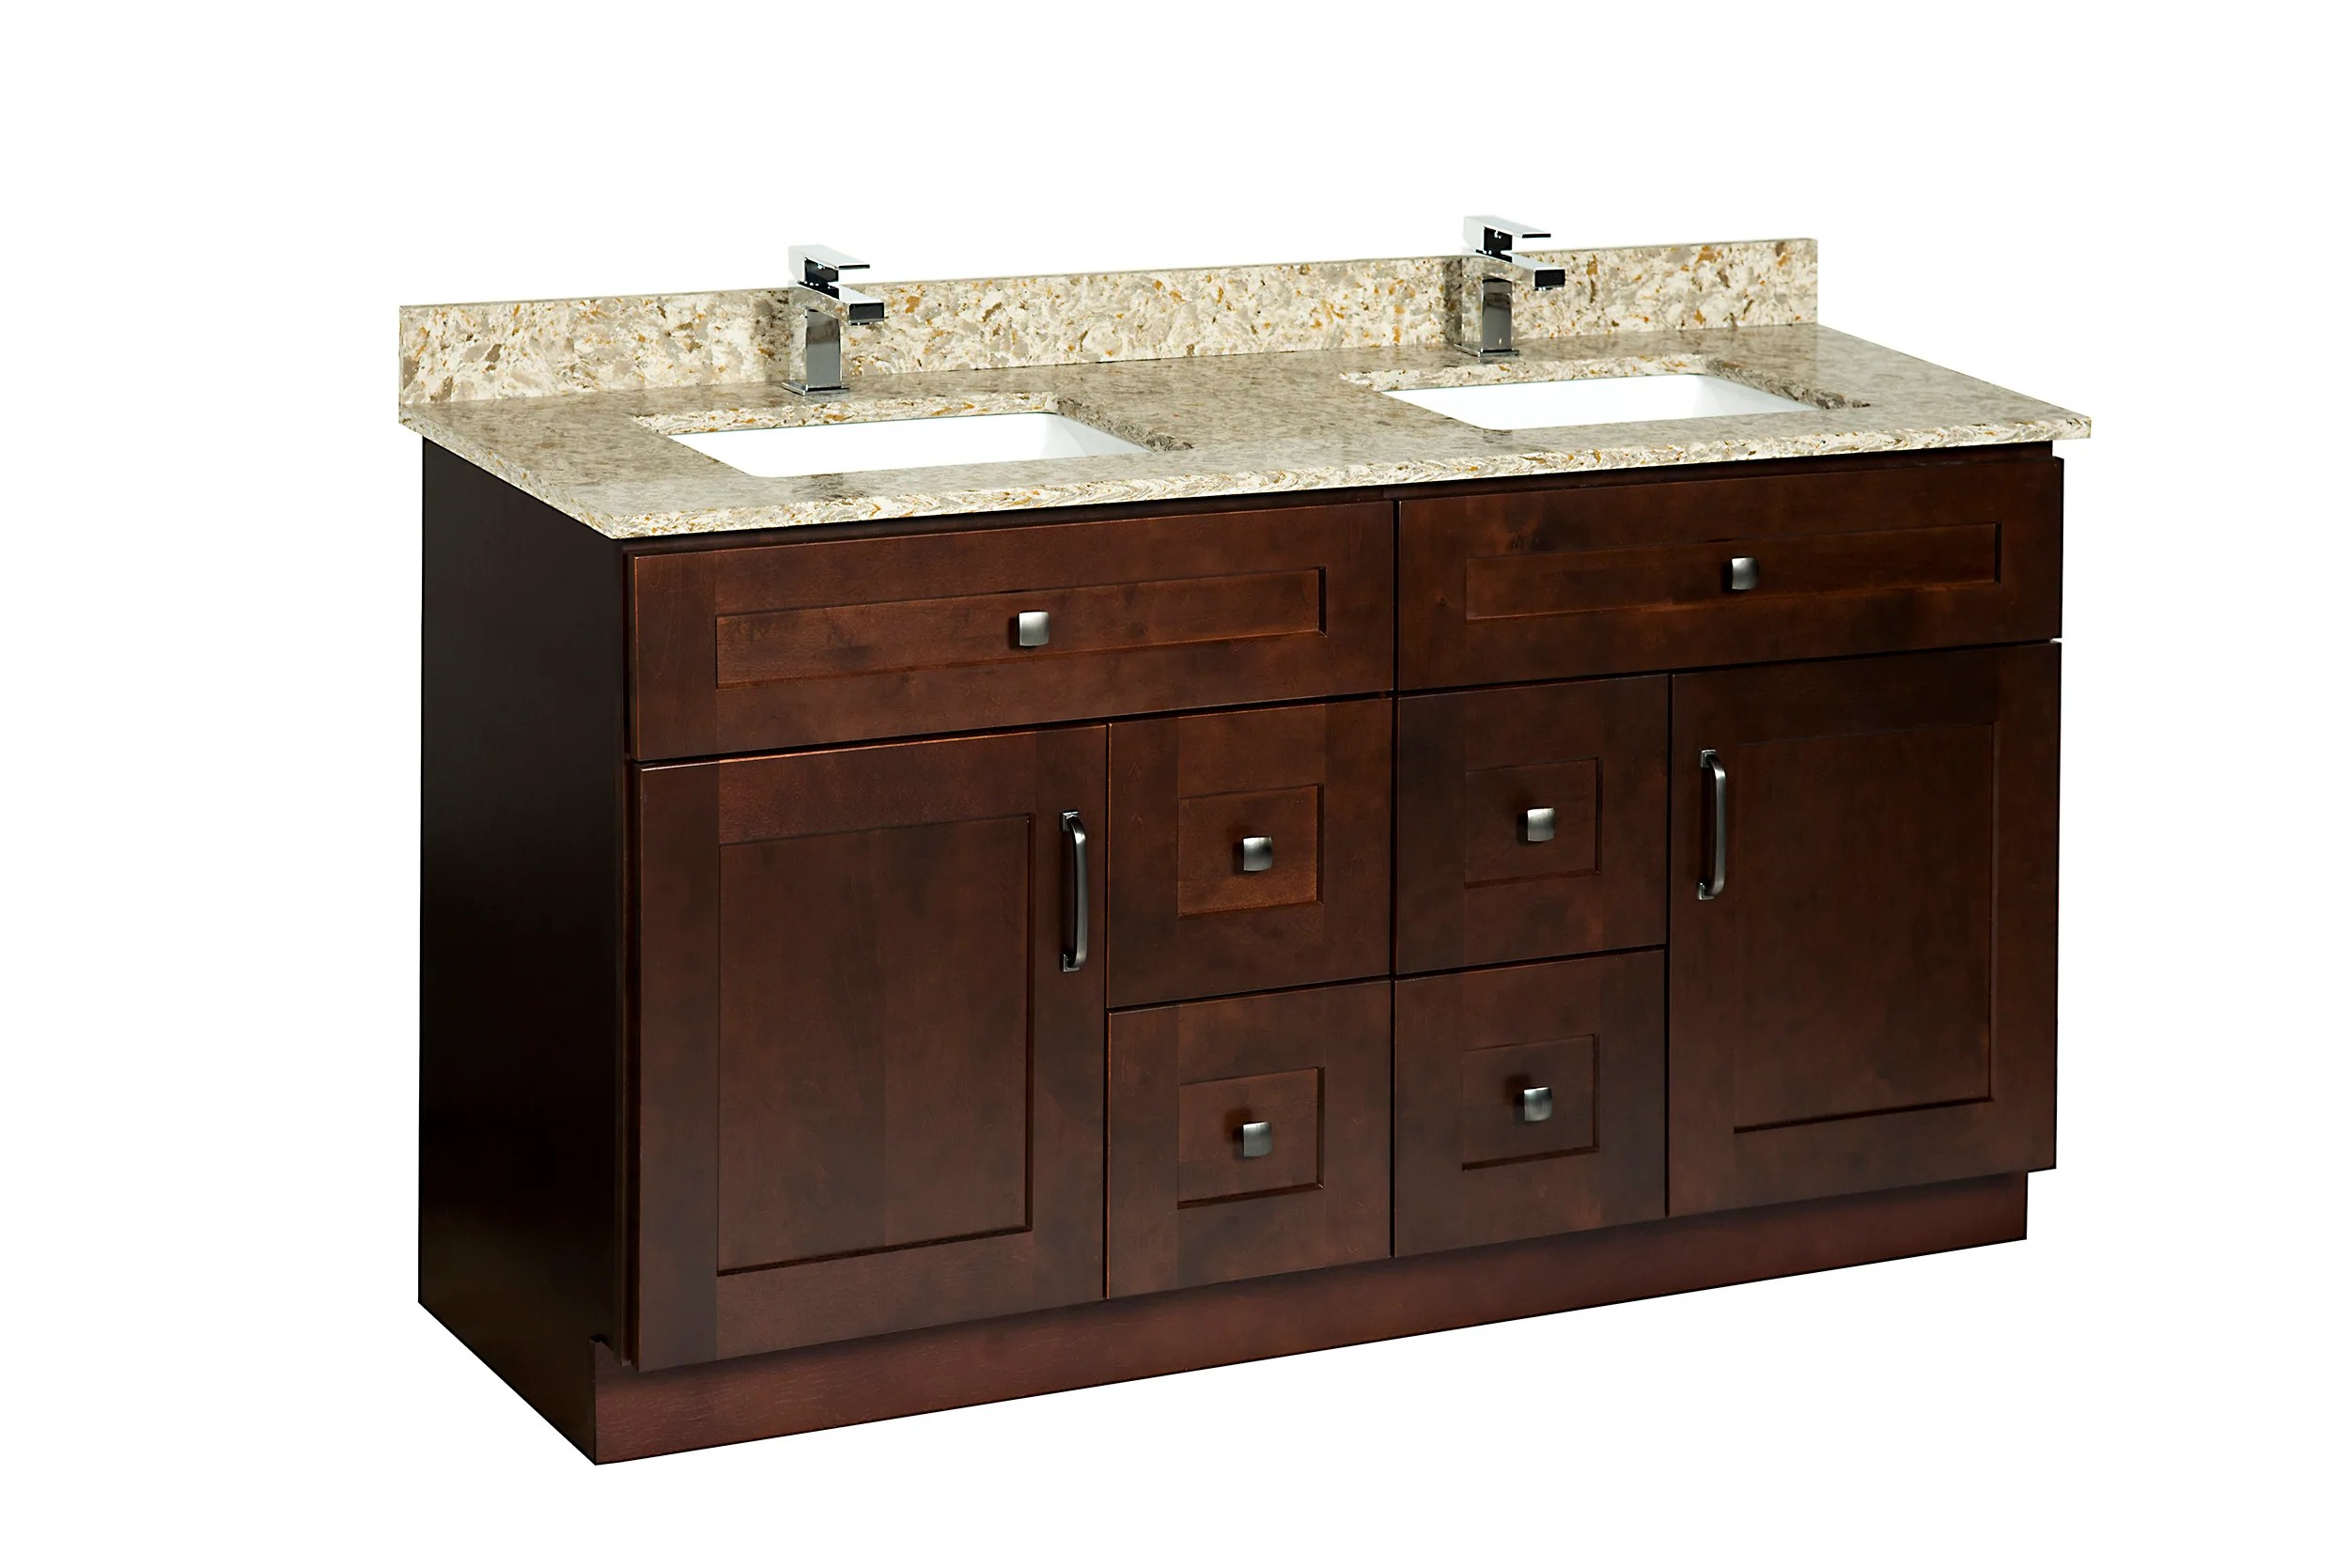 Bathroom Cabinet Configurations - 60 Double Sink